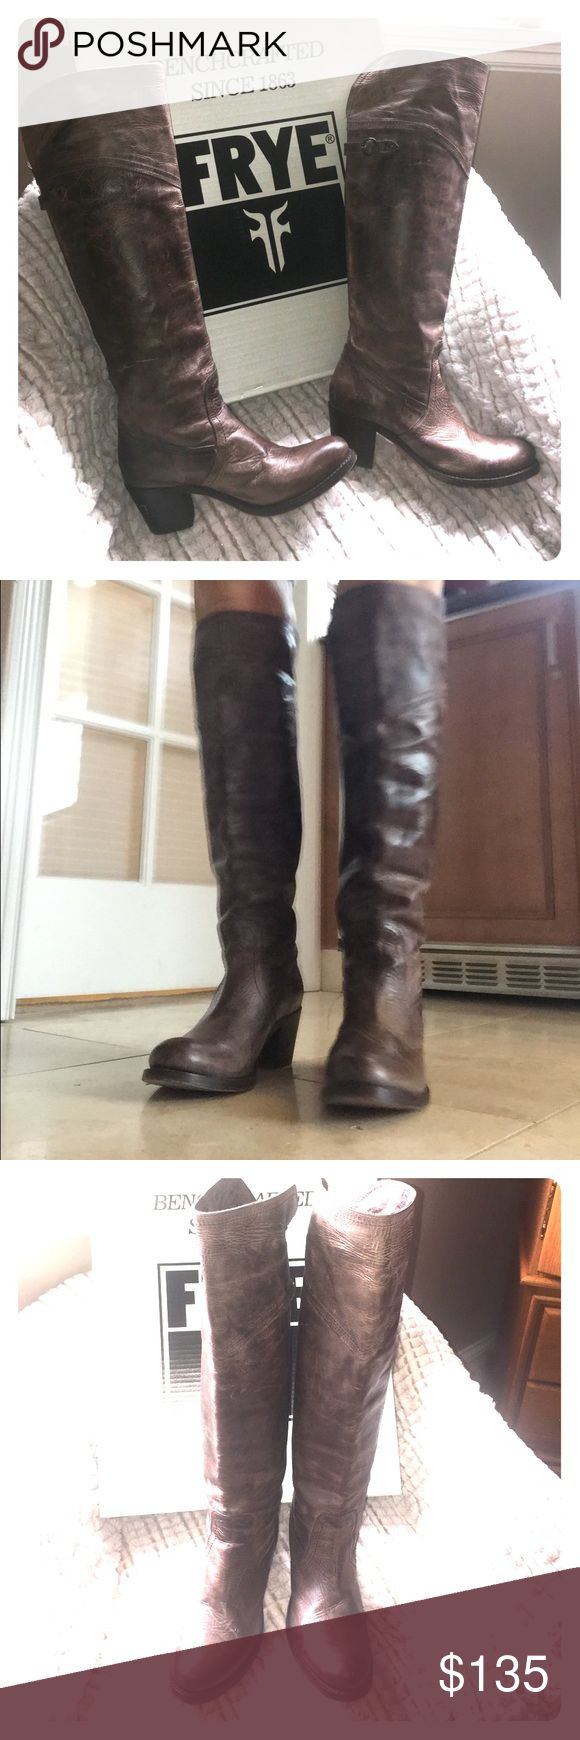 """Frye """"Jane"""" Tall Cuff in Taupe Frye """"Jane"""" Tall Over The Knee or Cuffed in Taupe. EUC, The leather was intended to look distressed like a bomber jacket. They sold as brown, but to me they are a mix brown, gray and cream. Easy slip on/off, wear over the knee or cuffed, brass hardware, 2 1/2"""" stacked wood heel, leather bottom, cushioned sole, 15 1/2"""" shaft, Frye Shoes Over the Knee Boots"""